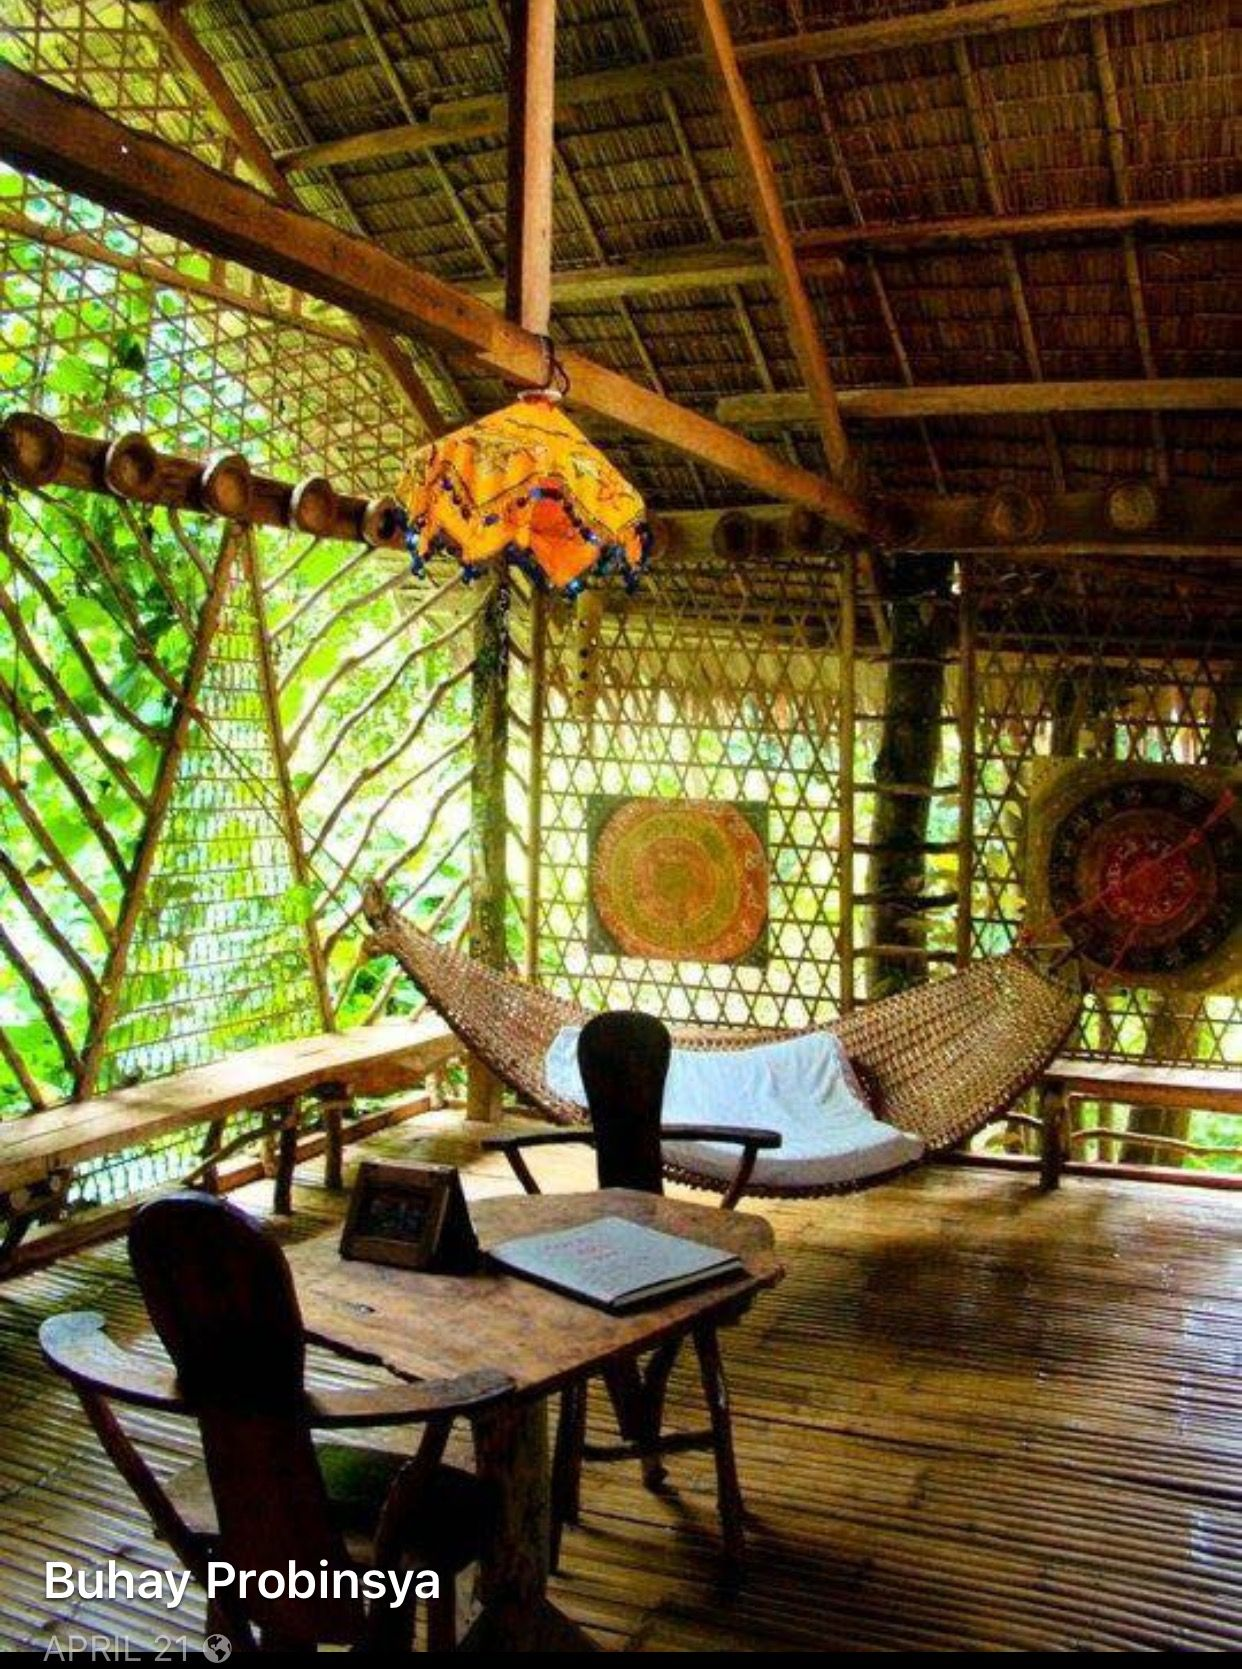 Philippine architecture tropical architecture bahay kubo design philippines rest house philippines philippines